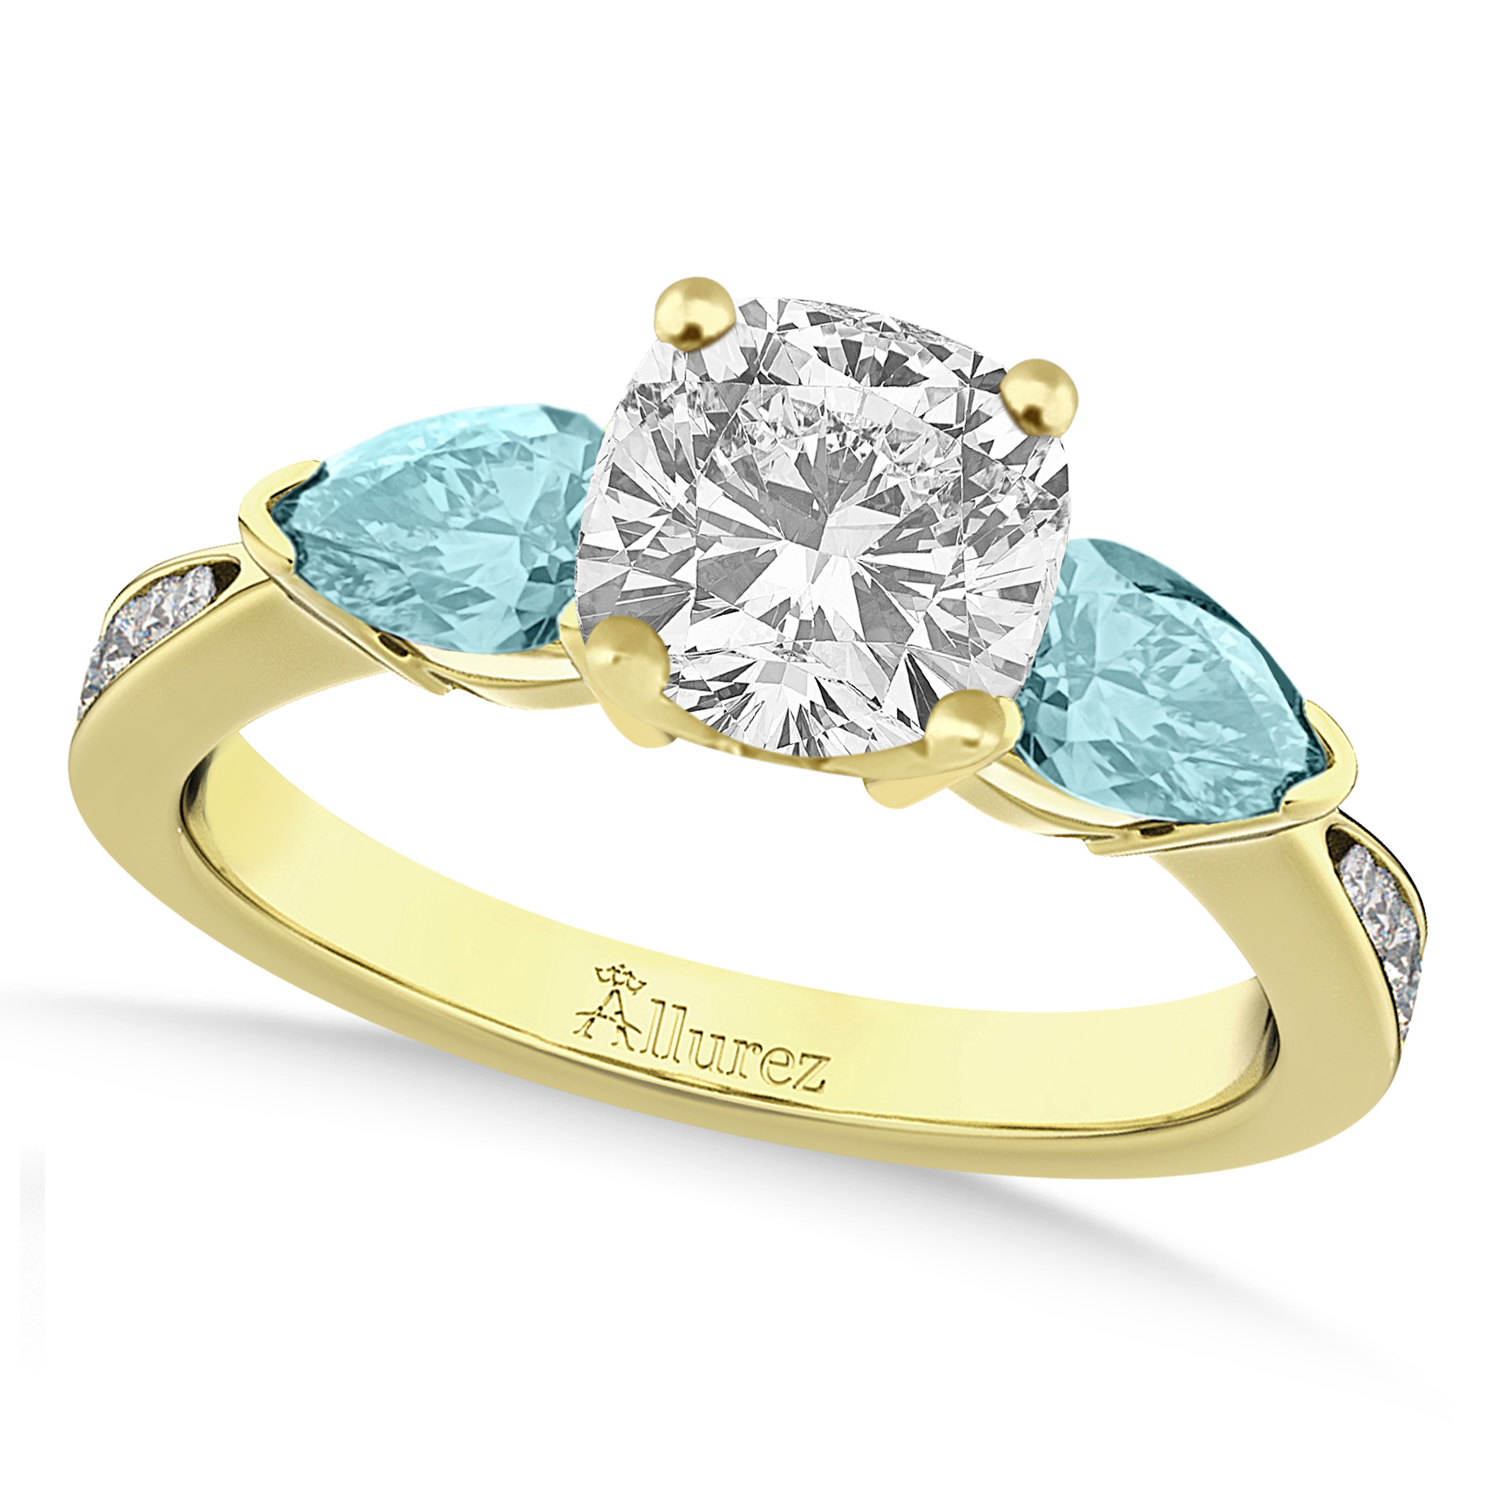 Cushion Diamond & Pear Aquamarine Engagement Ring 14k Yellow Gold (1.29ct)